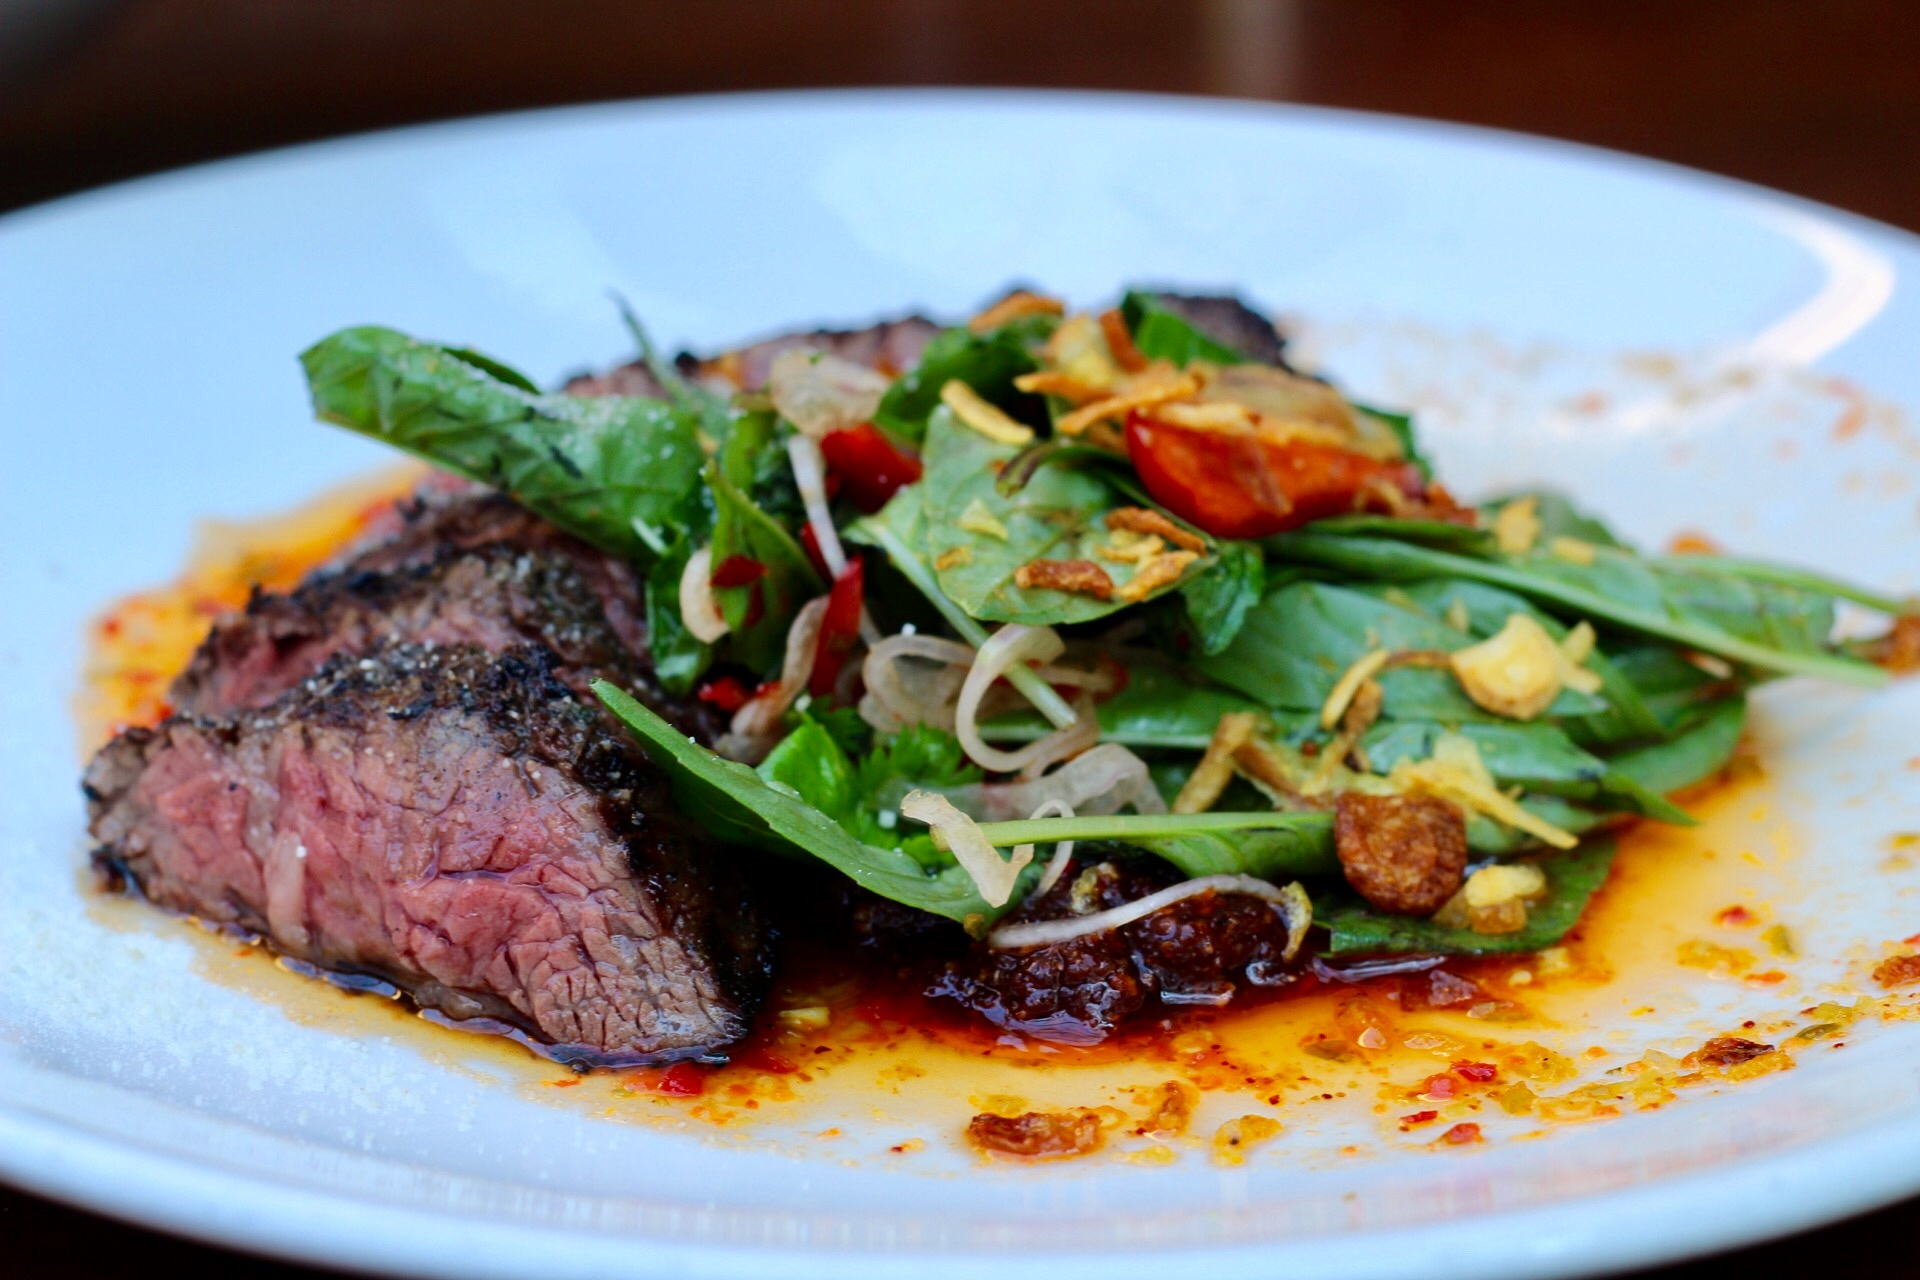 Tiger Cry with char-grilled hanger steak at Sway